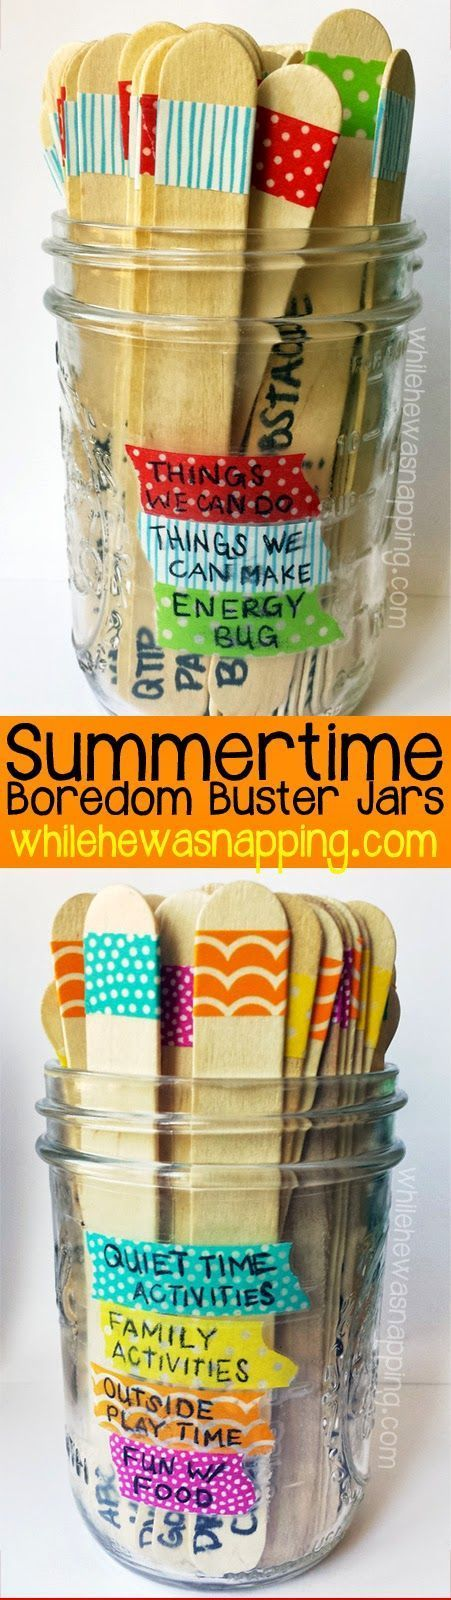 21++ Crafts to make at home when bored ideas in 2021